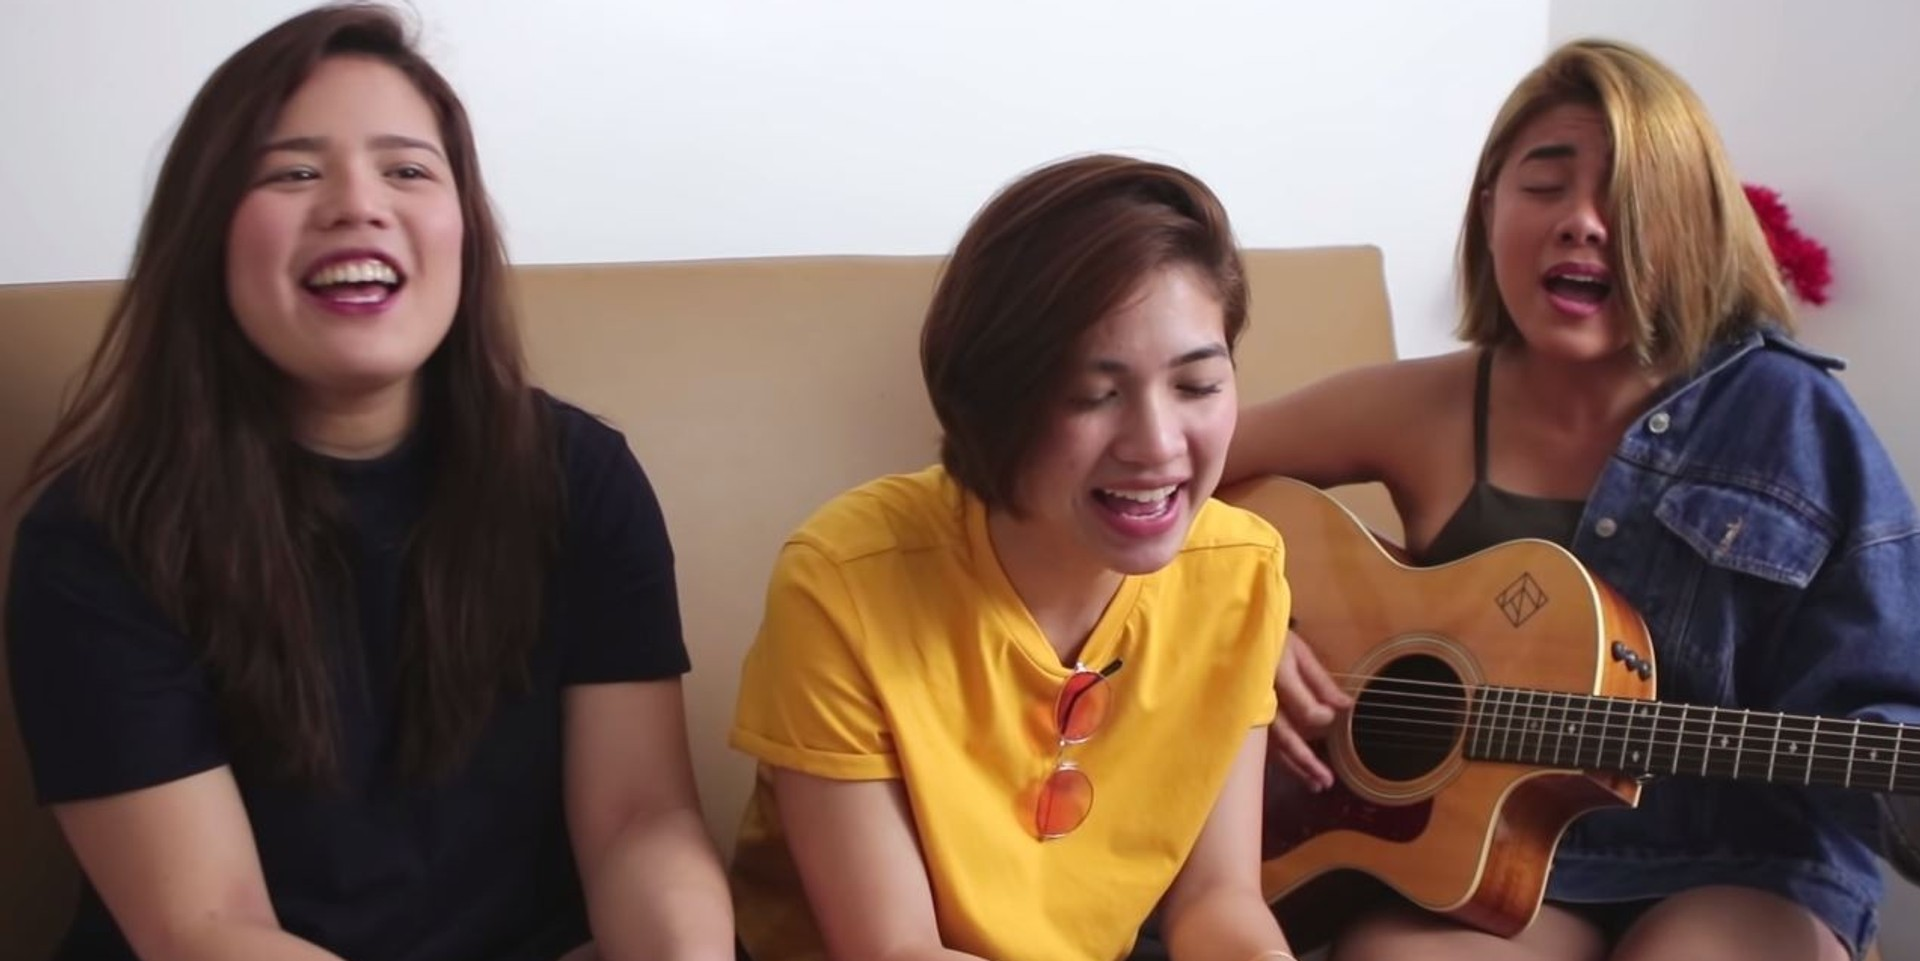 Leanne & Naara and Keiko Necesario channel their inner Alicia Keys with 'If I Ain't Got You' – watch